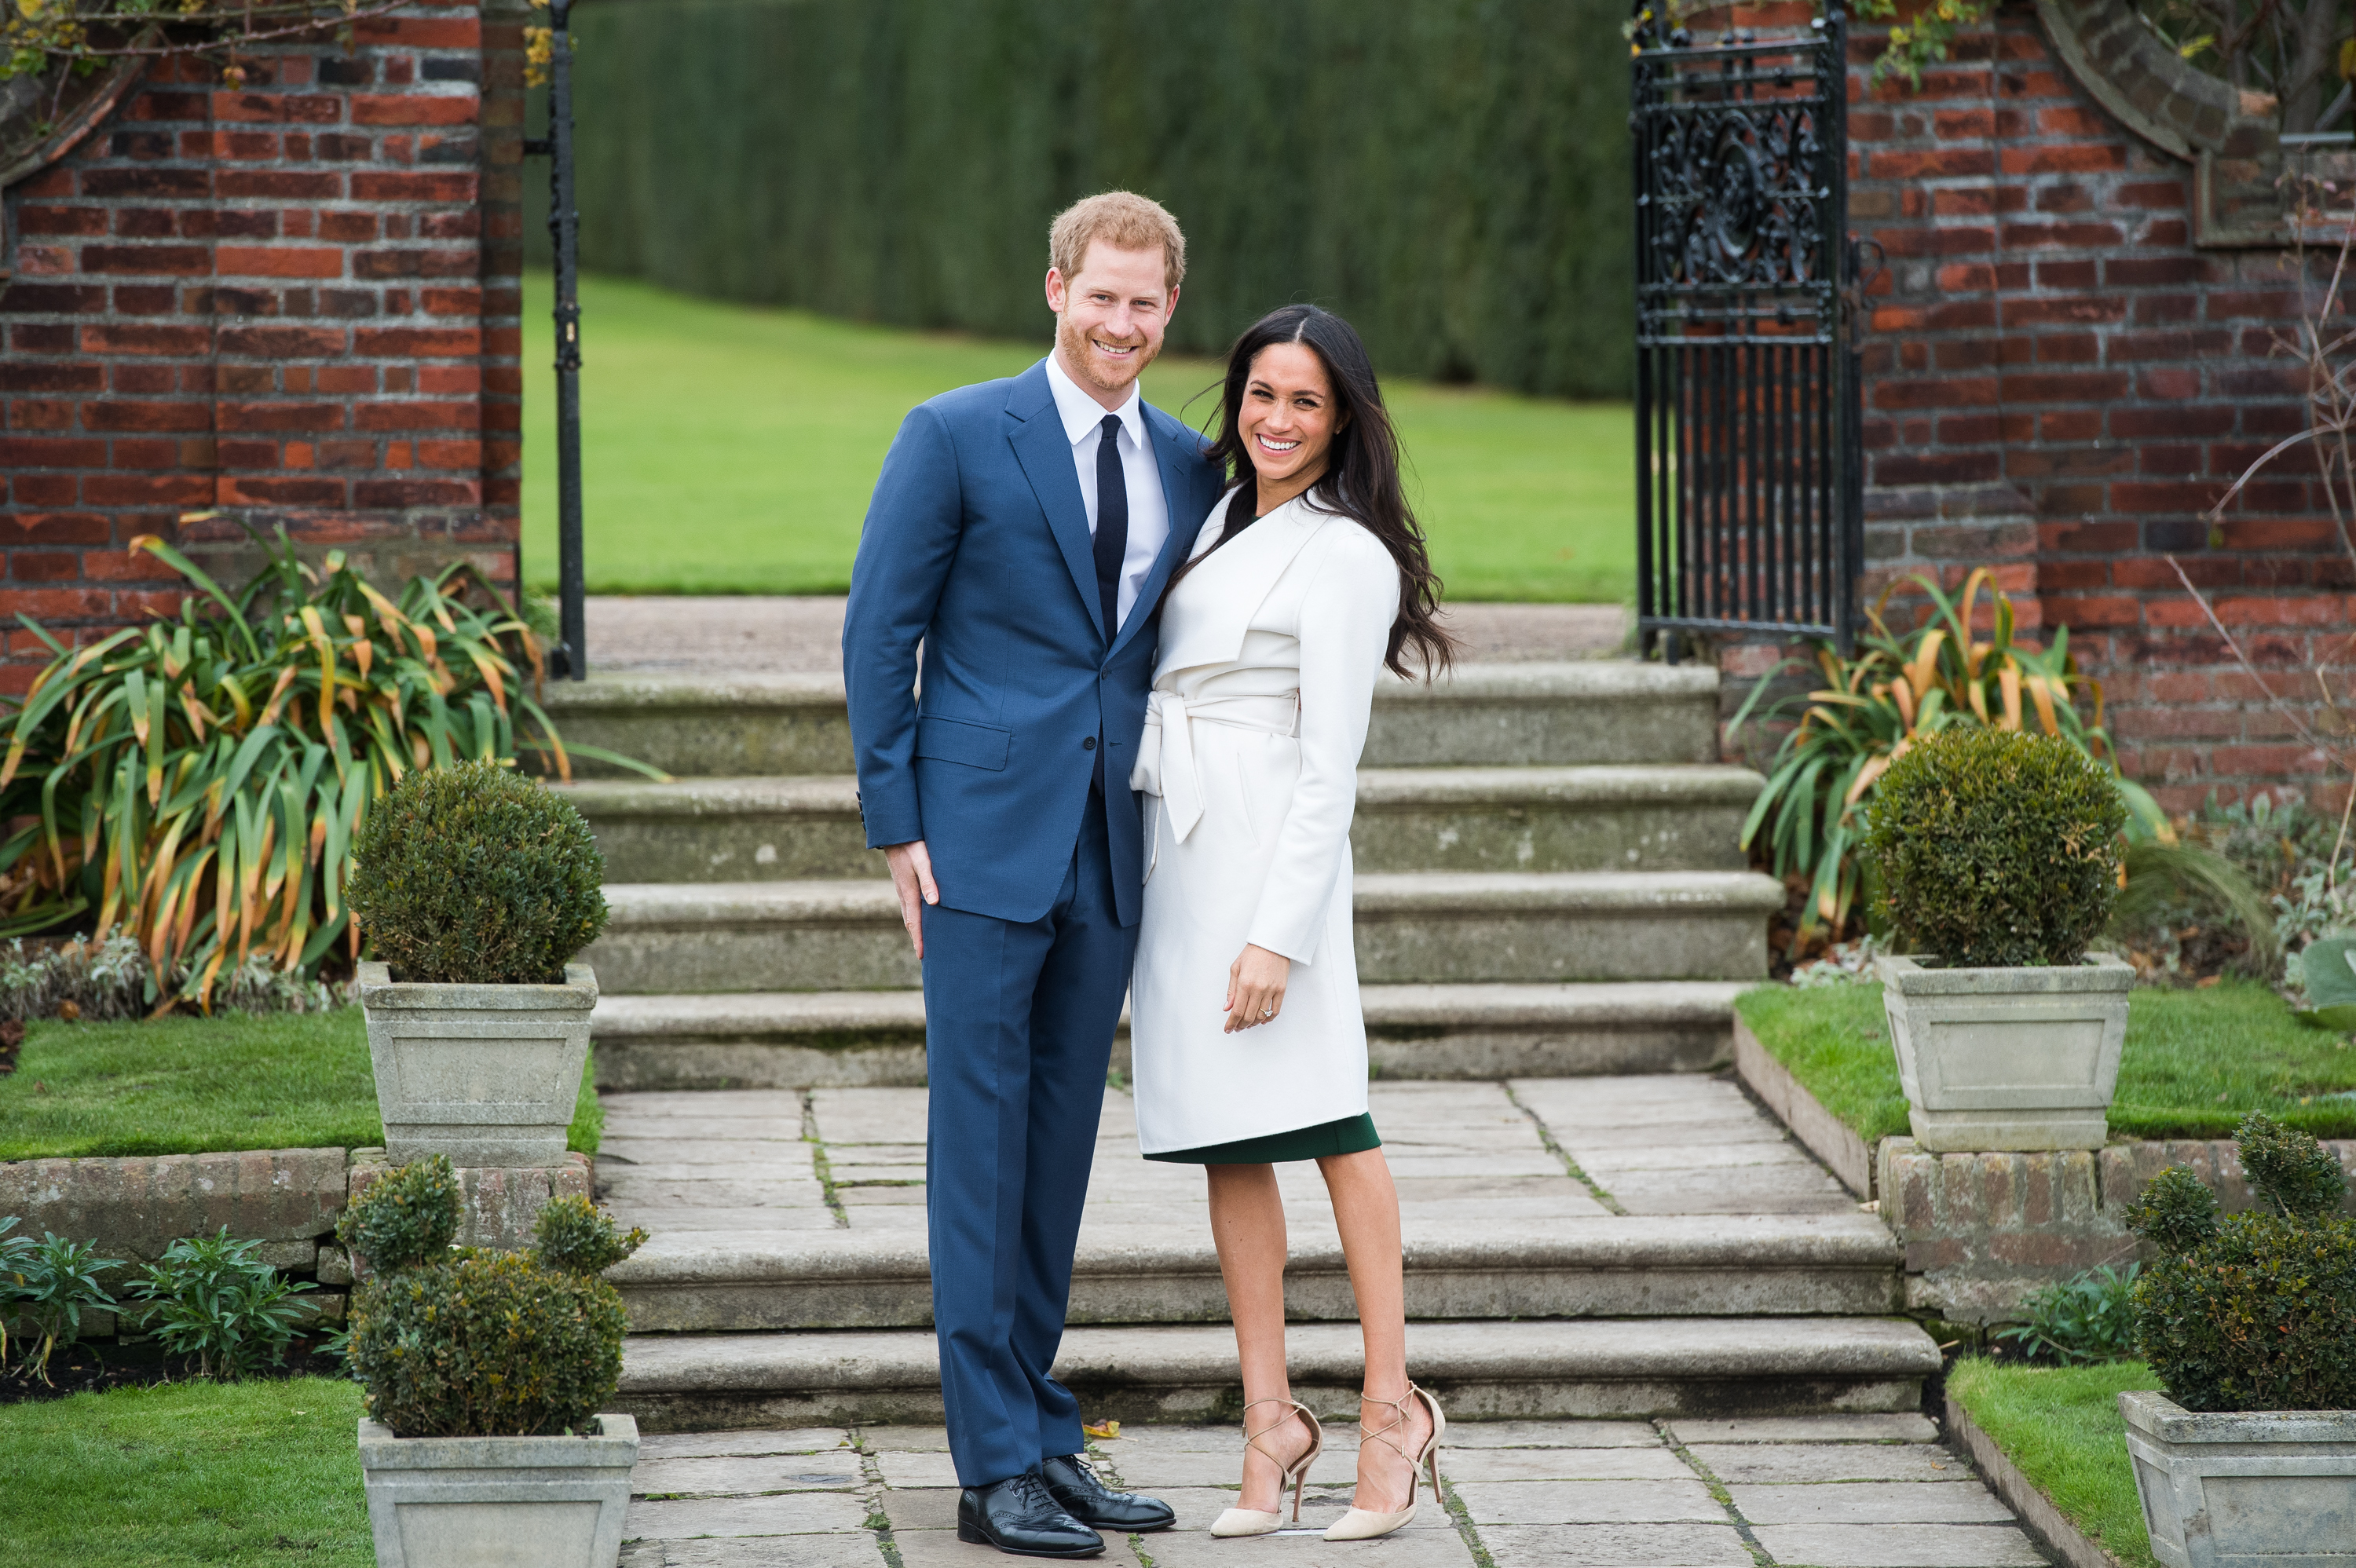 Prince Harry and Meghan Markle during an executive photocall during The Sunken Gardens during Kensington Palace to announce their rendezvous on Nov 27, 2017. Samir Hussein—Samir Hussein/WireImage